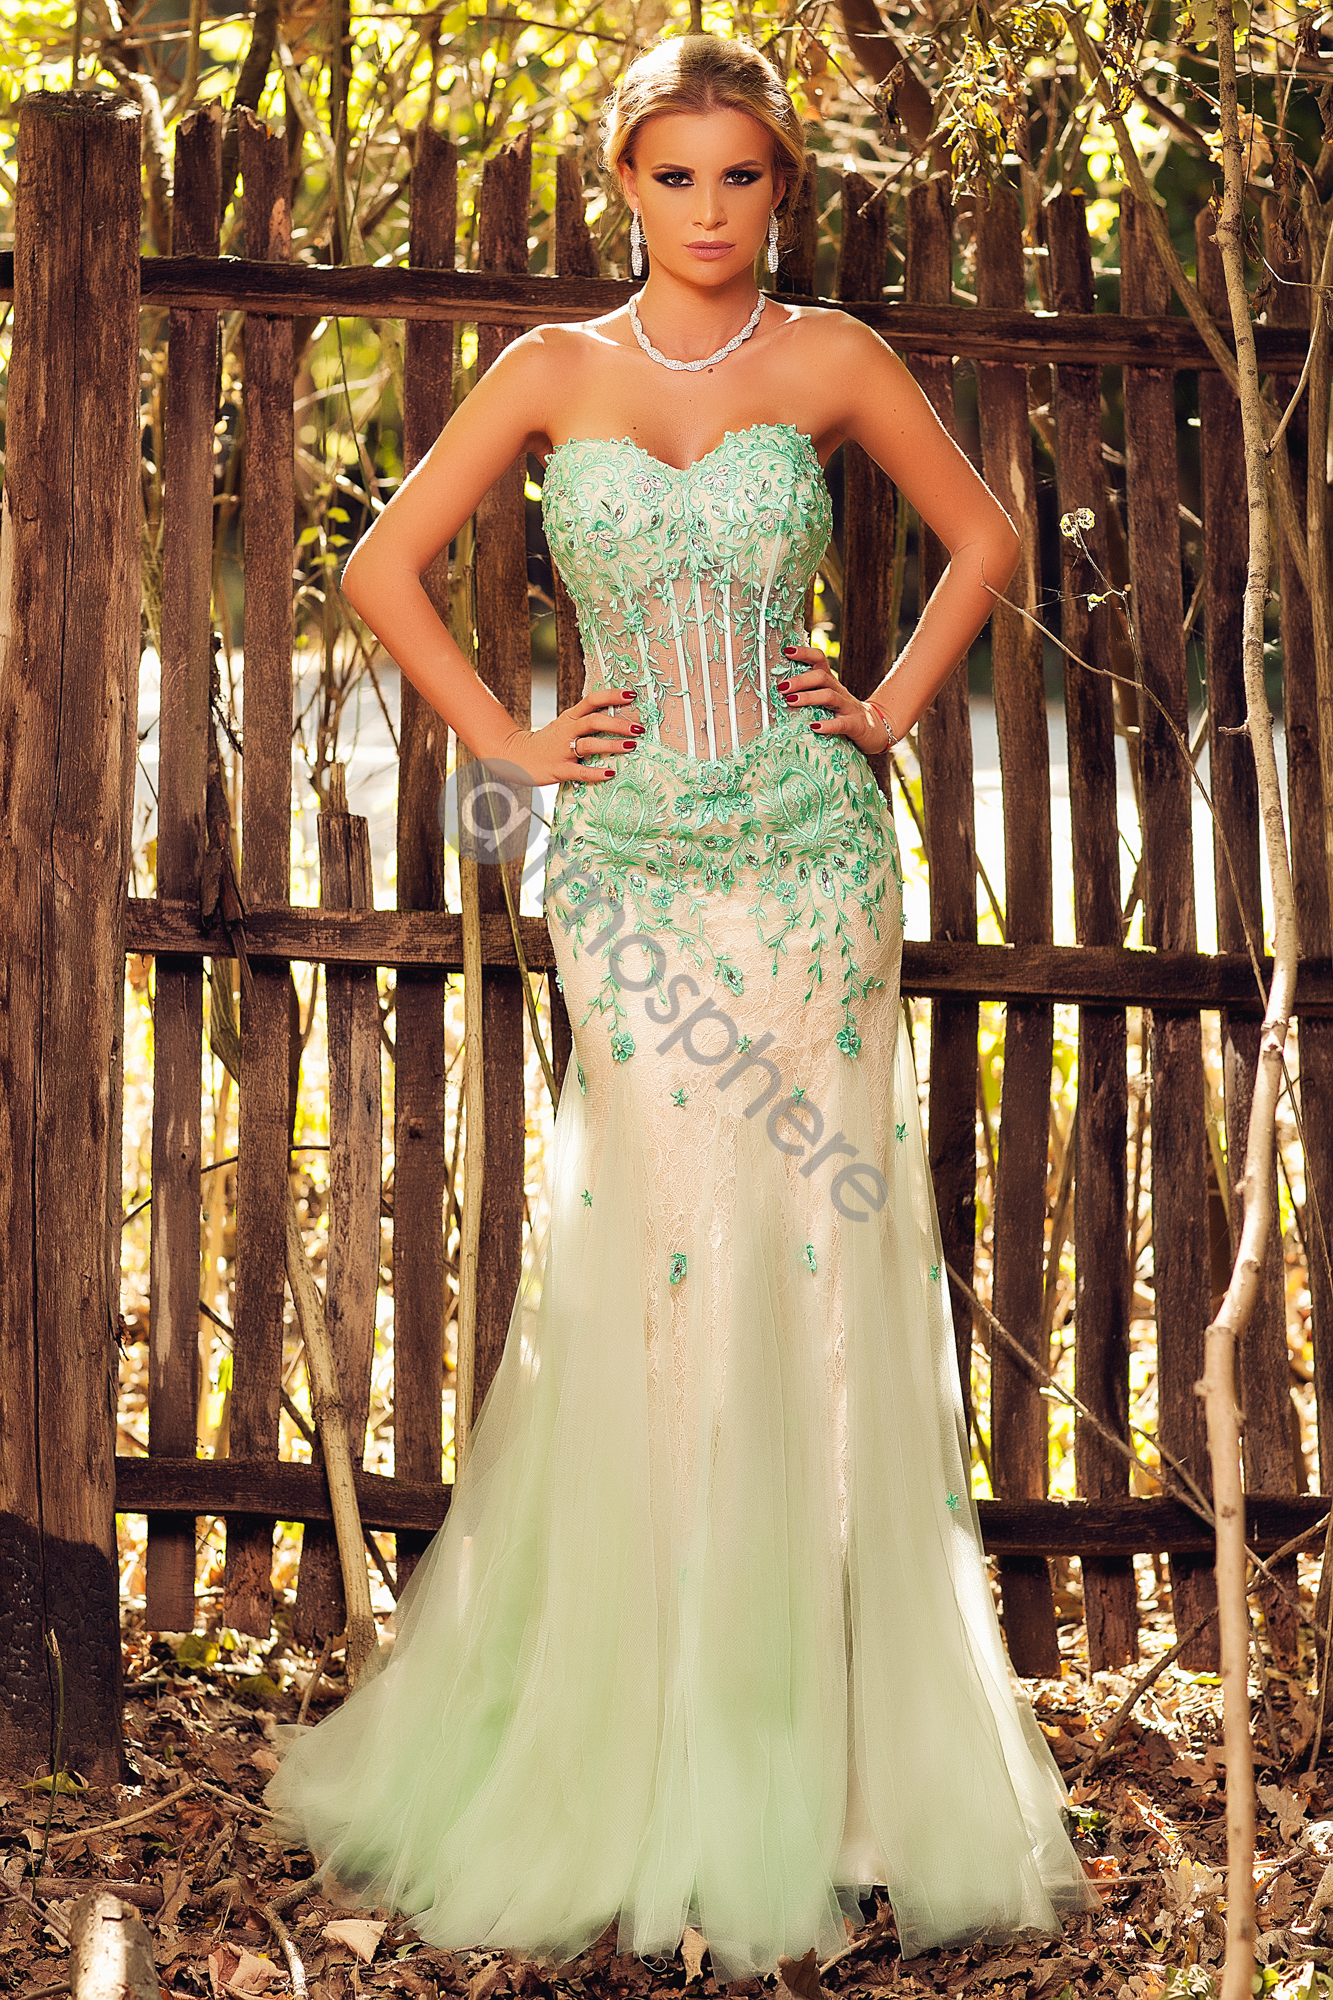 ROCHIE LUNGA BRODERIE VERDE SI CRISTALE C 25788